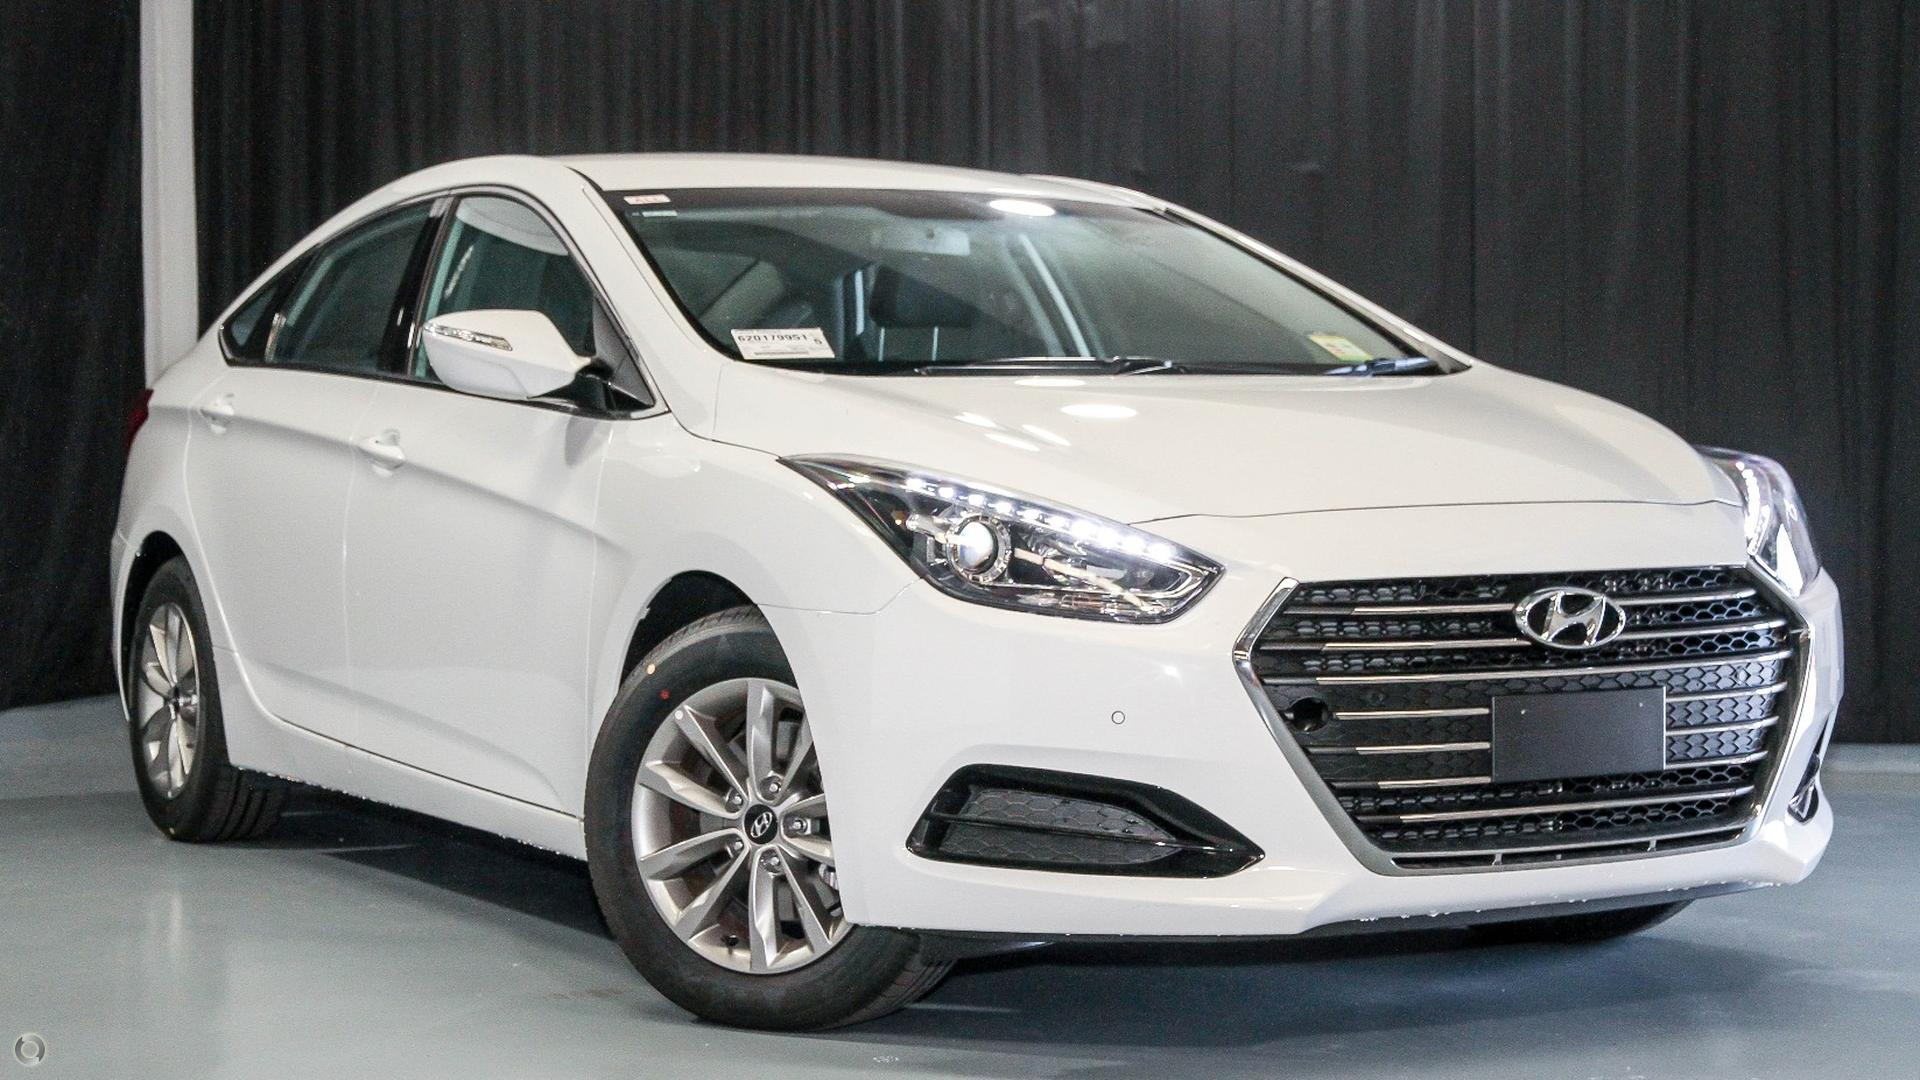 2017 Hyundai I40 Active VF4 Series II